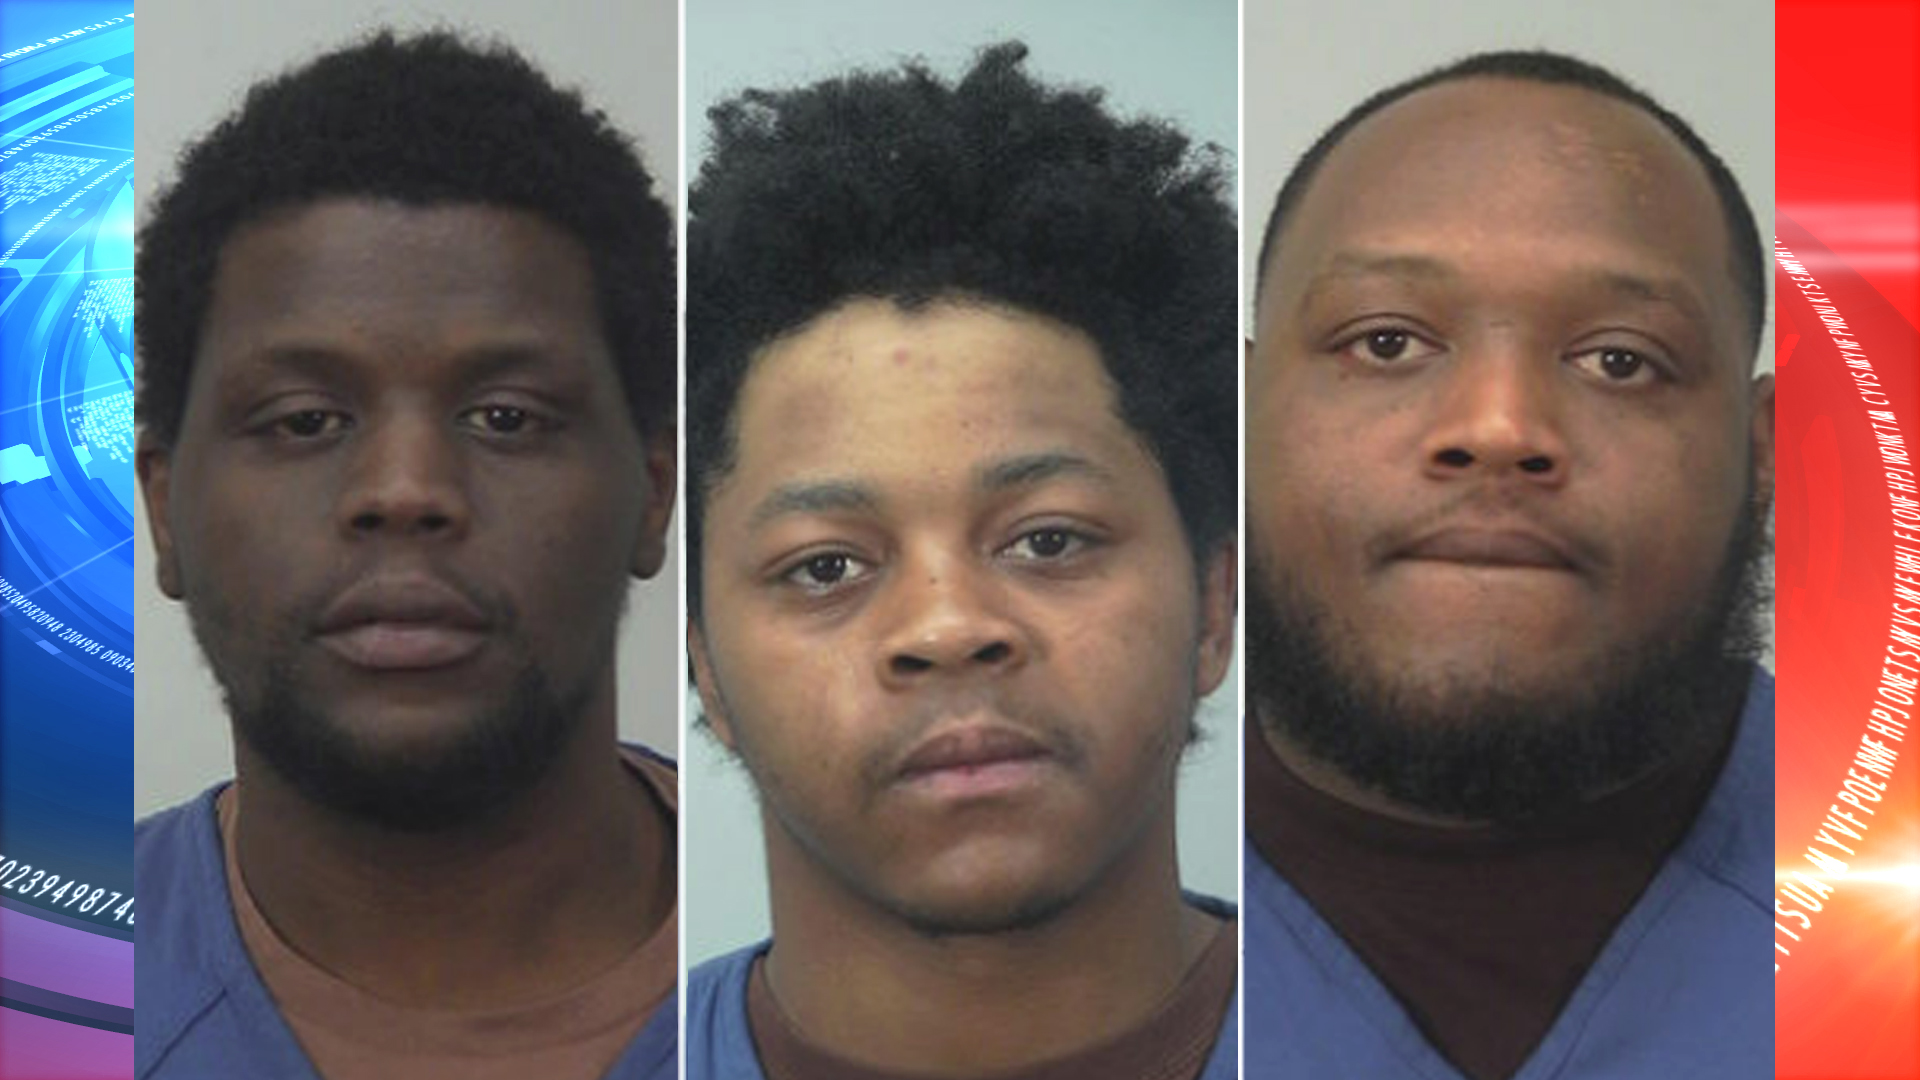 Cocaine, Marijuana, Cash, Counterfeited $100 Bills Seized During Madison Drug Bust